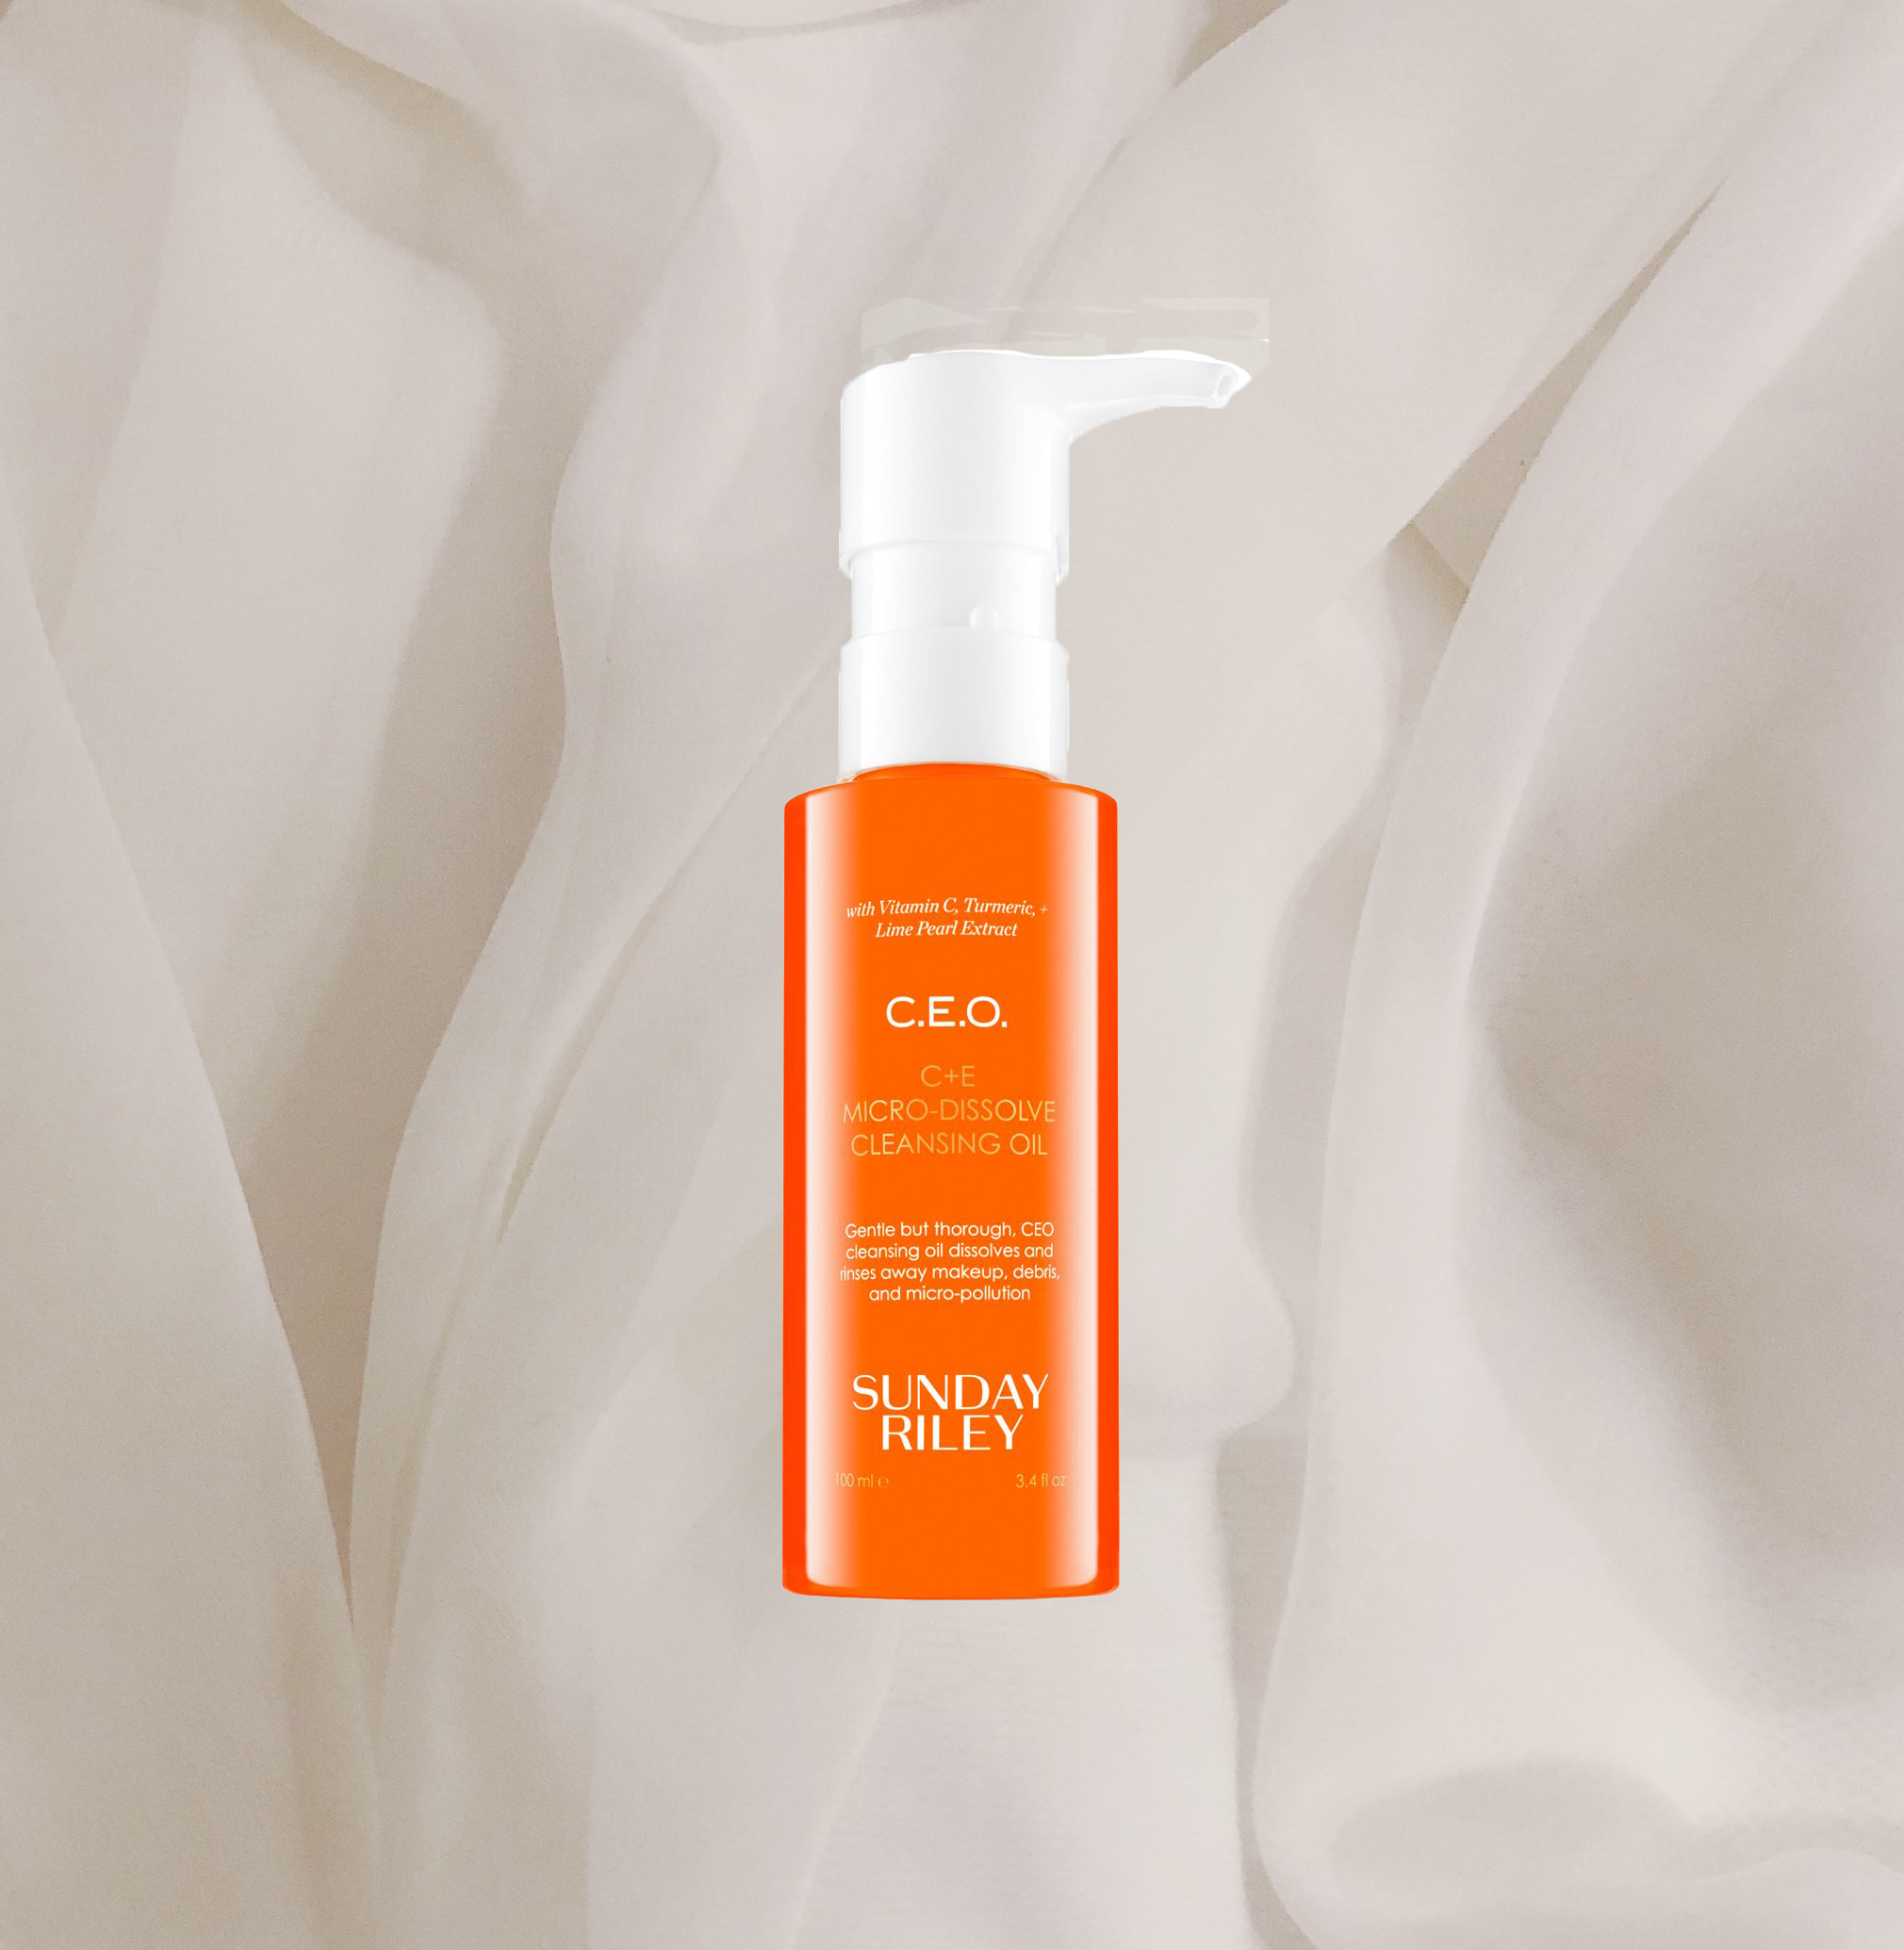 AGAIN, ANOTHER CLEANSER. YES, THEY ARE IMPORTANT TO ME AND I FELL IN LOVE WITH THE   CEO OIL CLEANSER BY SUNDAY RILEY  ! IT'S SO GENTLE AND SOFT AND JUST PERFECT AND IT GETS RID OF EVEN THE HEAVIEST MAKE-UP. I CAN HIGHLY RECOMMEND IT FOR SENSITIVE SKIN LIKE MINE. - T